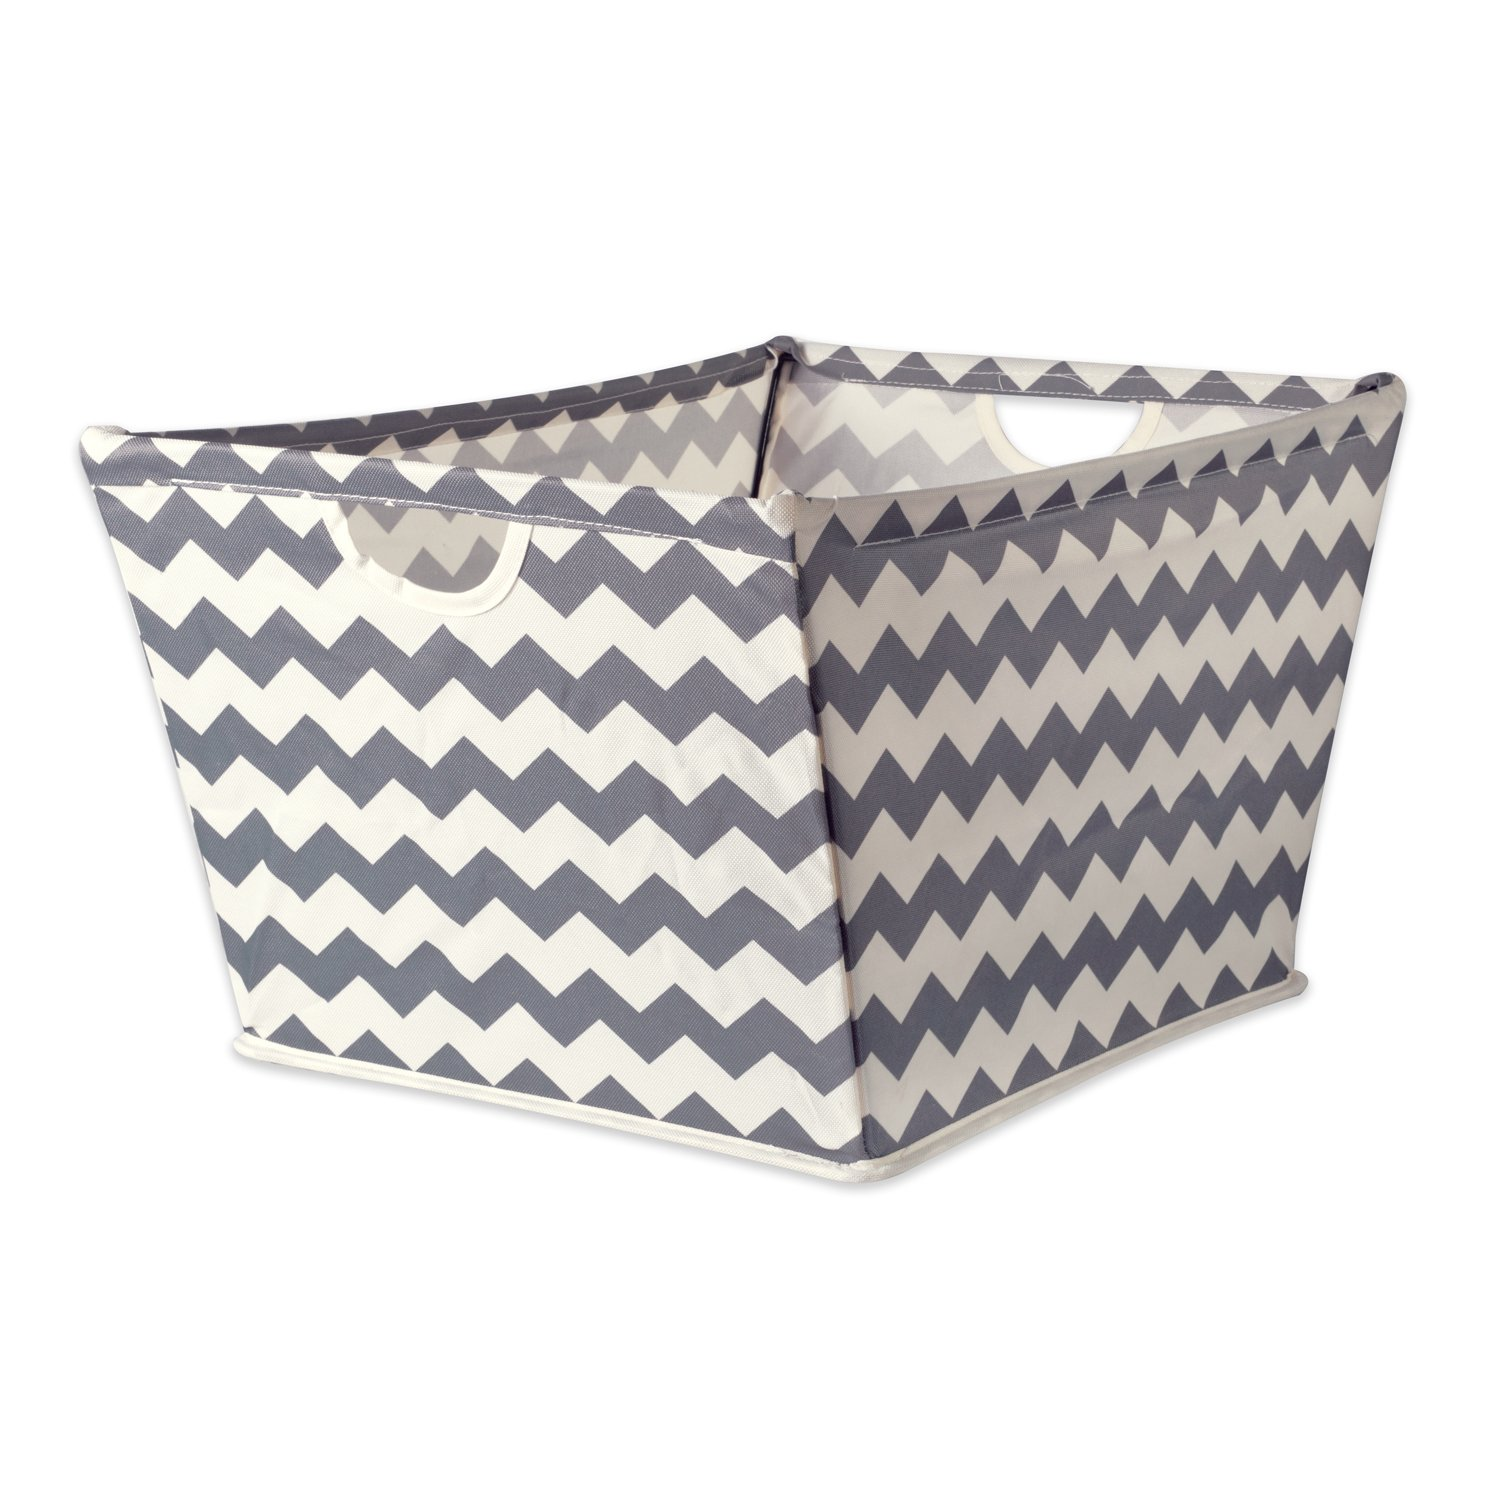 DII Collapsible Polyester Trapezoid Storage Basket, Home Organizational Solution for Office, Bedroom, Closet, & Toys (X-Large - 22x15x13'') Gray Chevron by DII